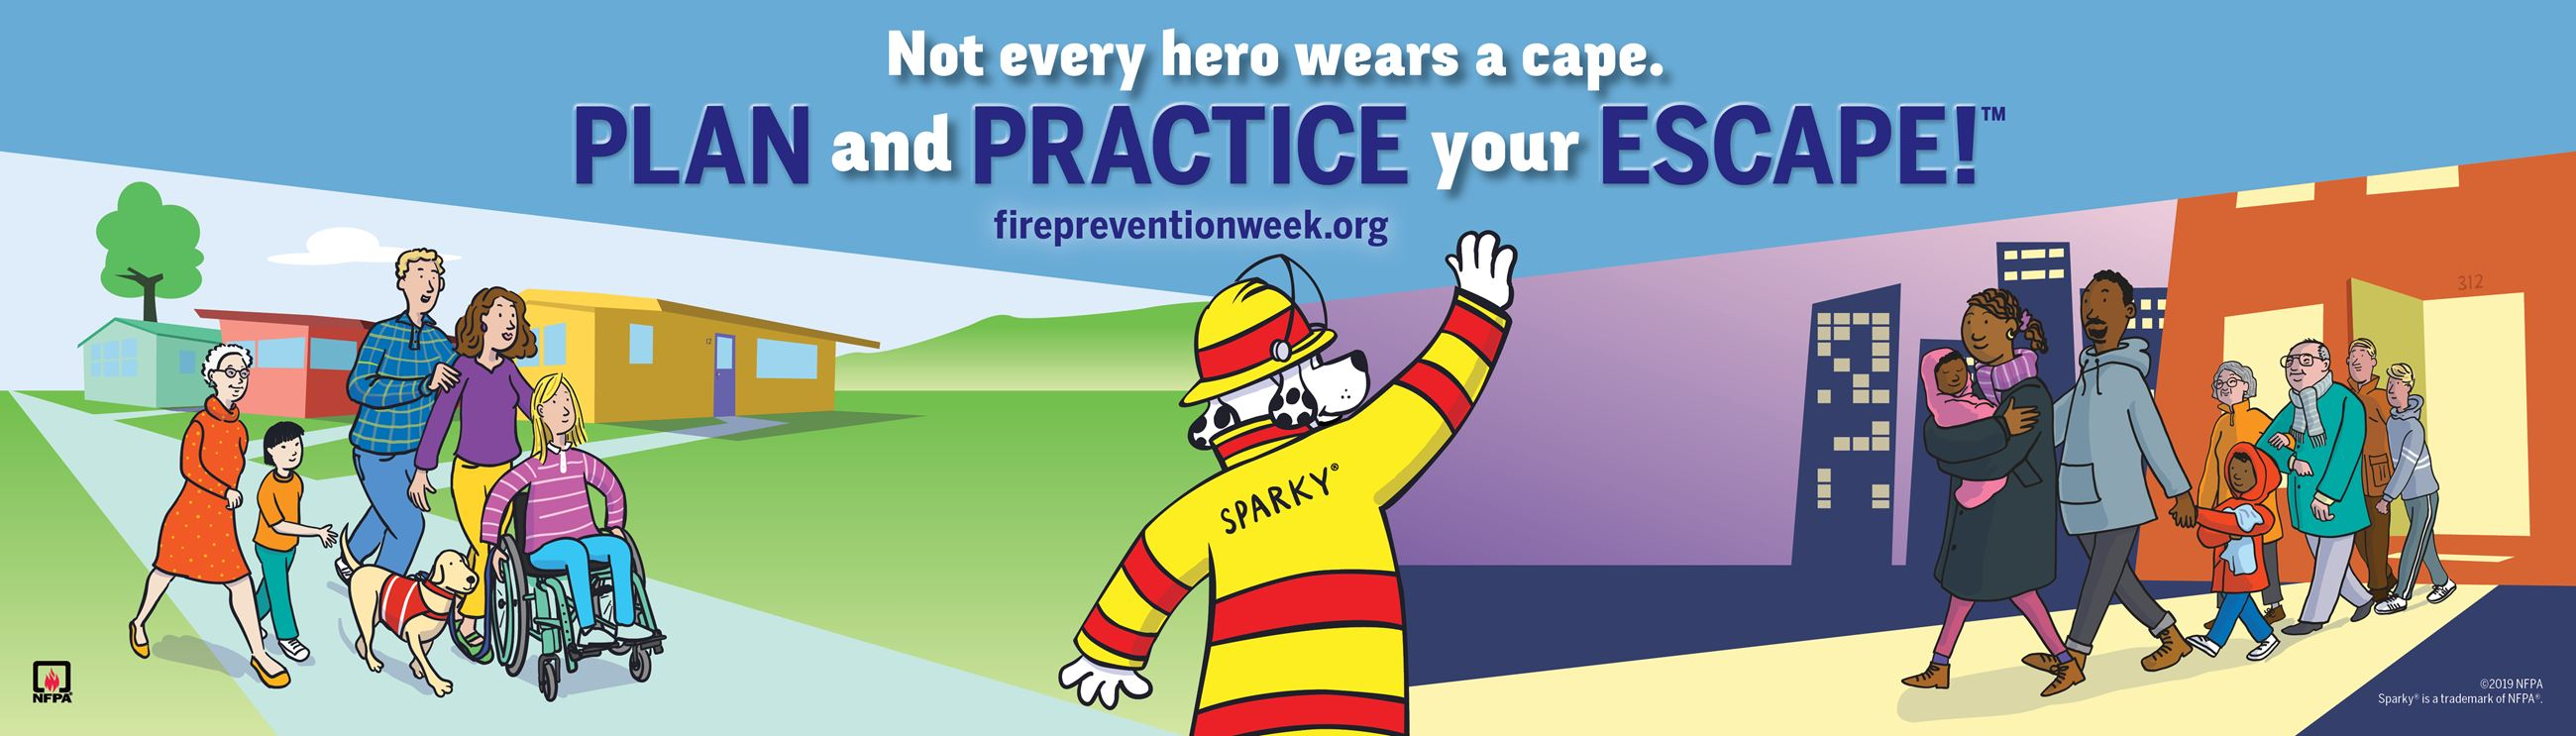 "Graphic banner for Fire Prevention Week featuring residential scene and safety theme ""Not every h"